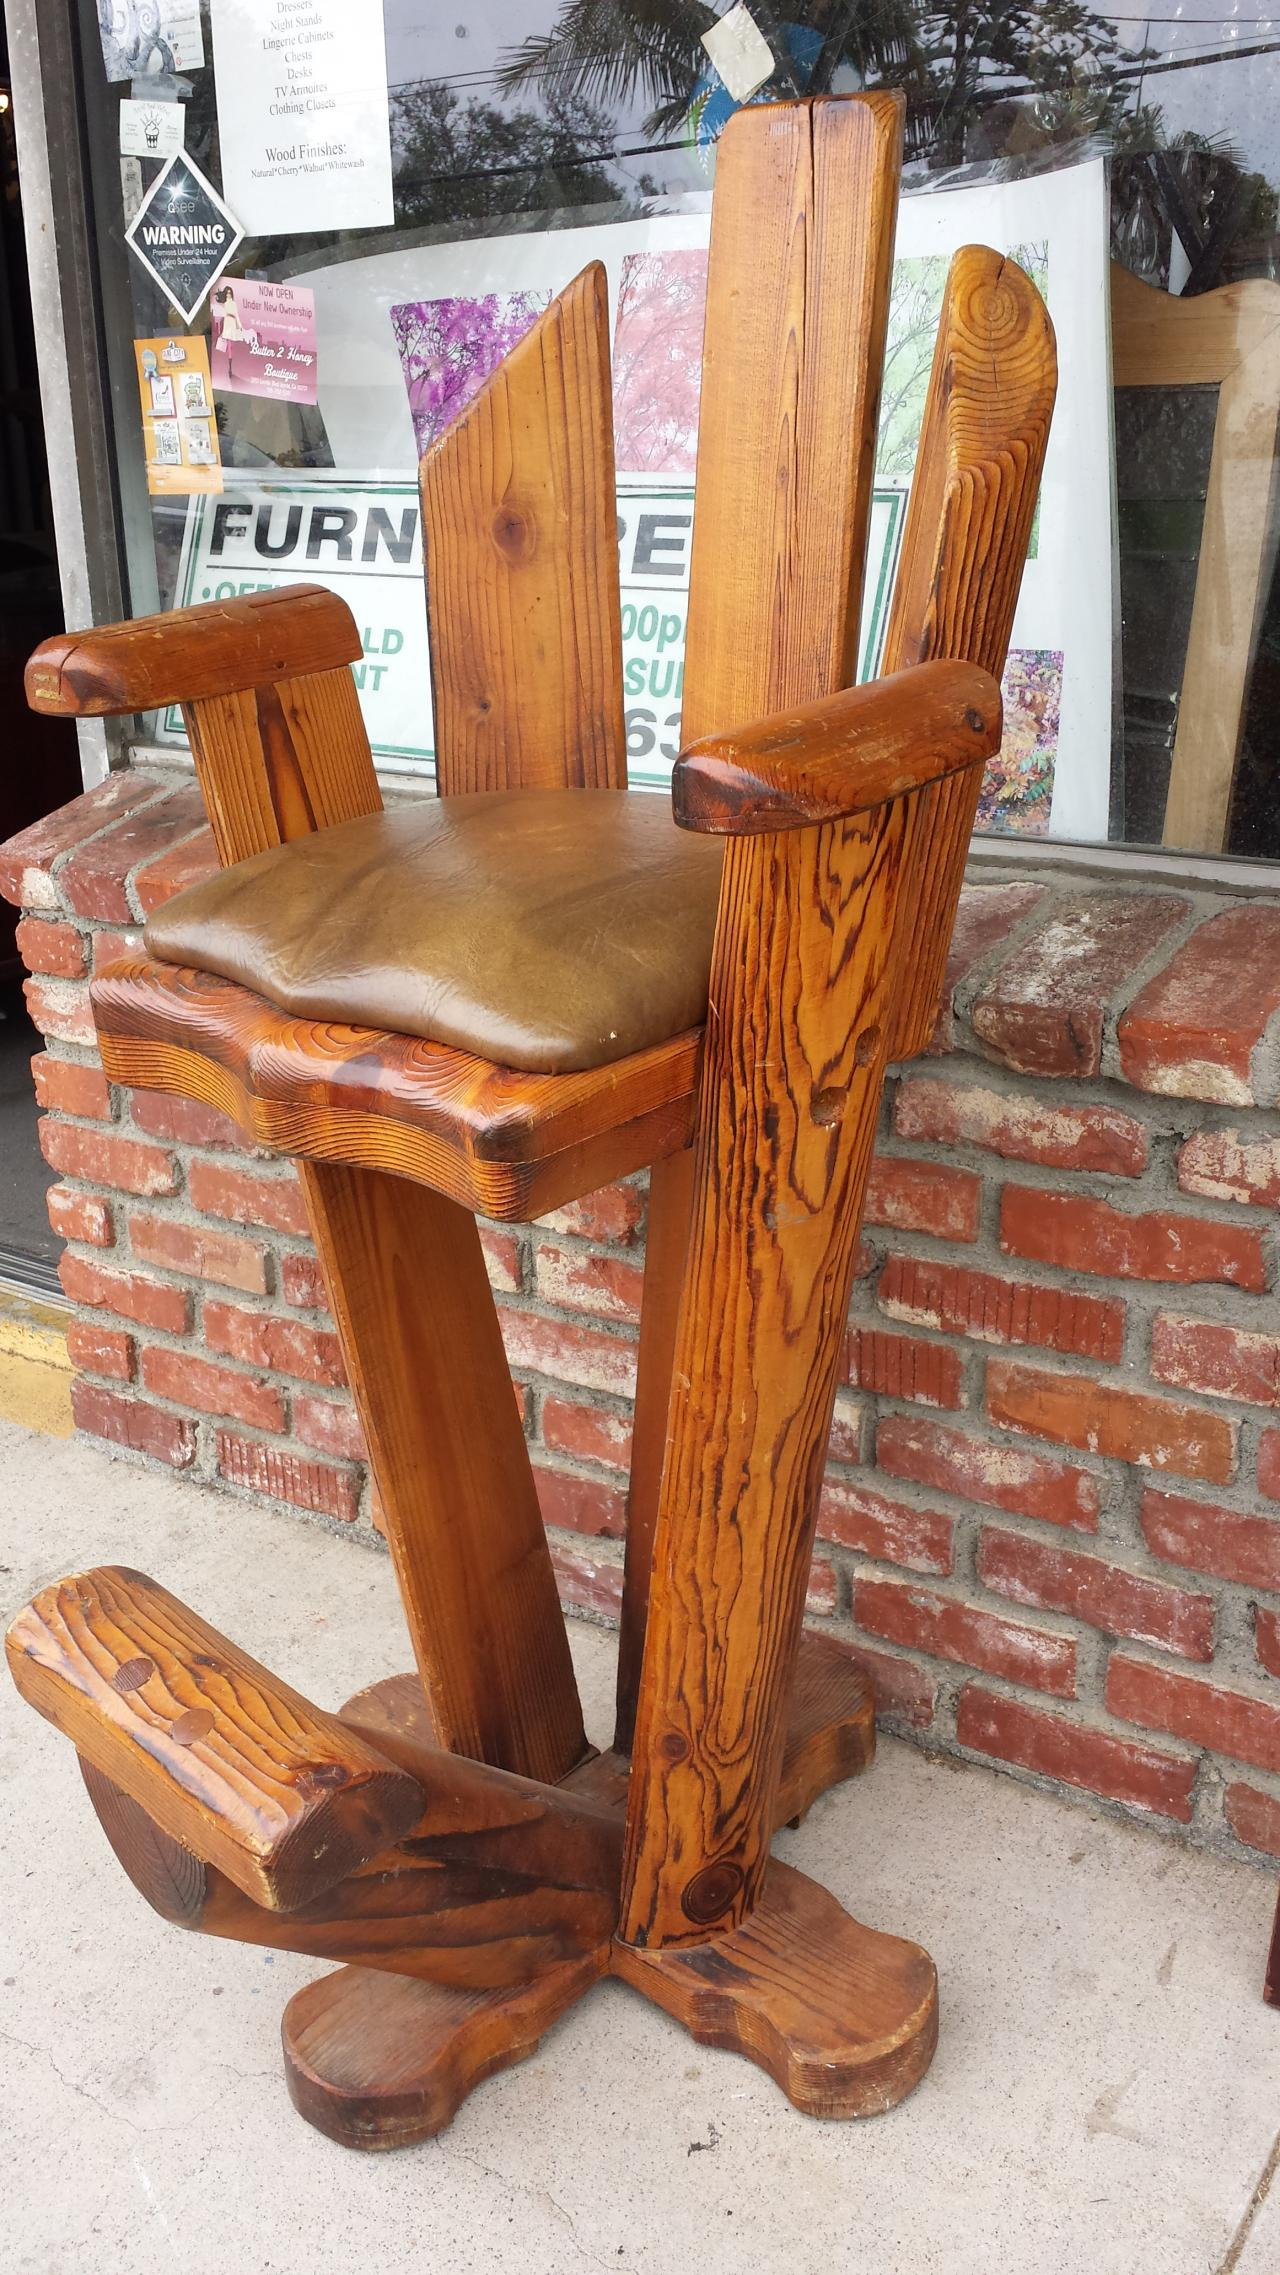 cheap used furniture. Brilliant Cheap Used Furniture Vintage Log Bar Chair Intended Cheap Furniture E